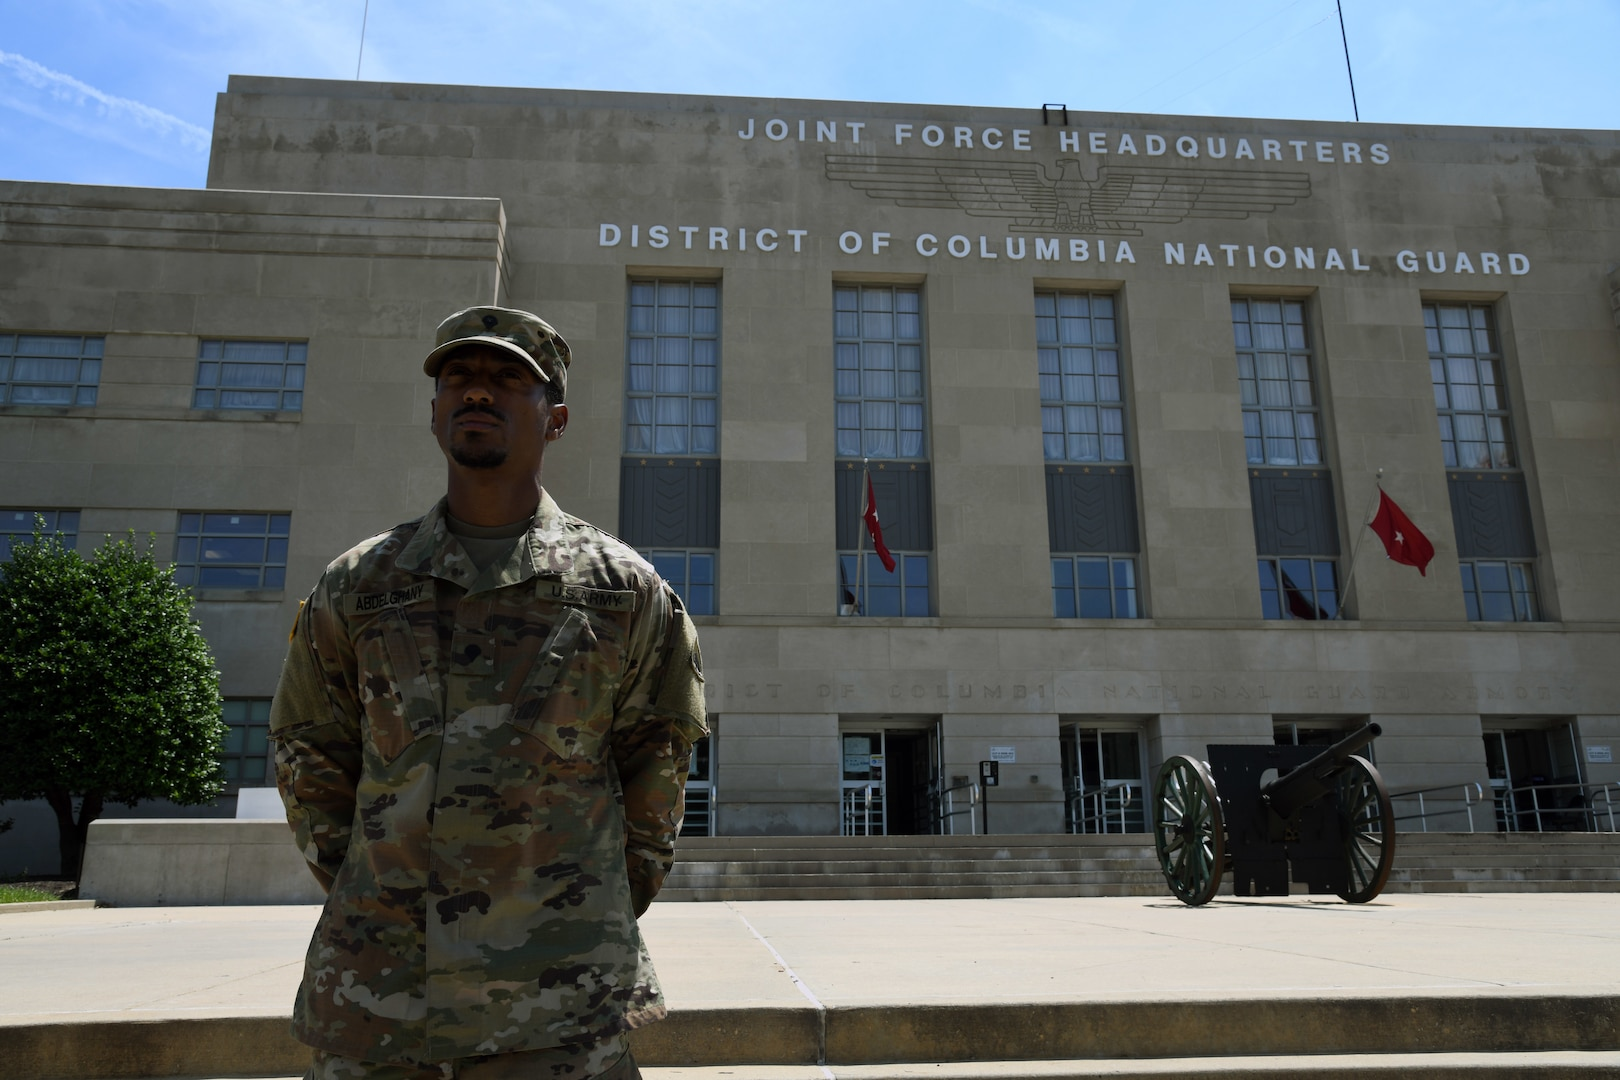 Spc. Khaled Abdelghany, 273rd Military Police Company, District of Columbia National Guard, stands in front of the D.C. Armory in Washington, D.C June 9, 2020.